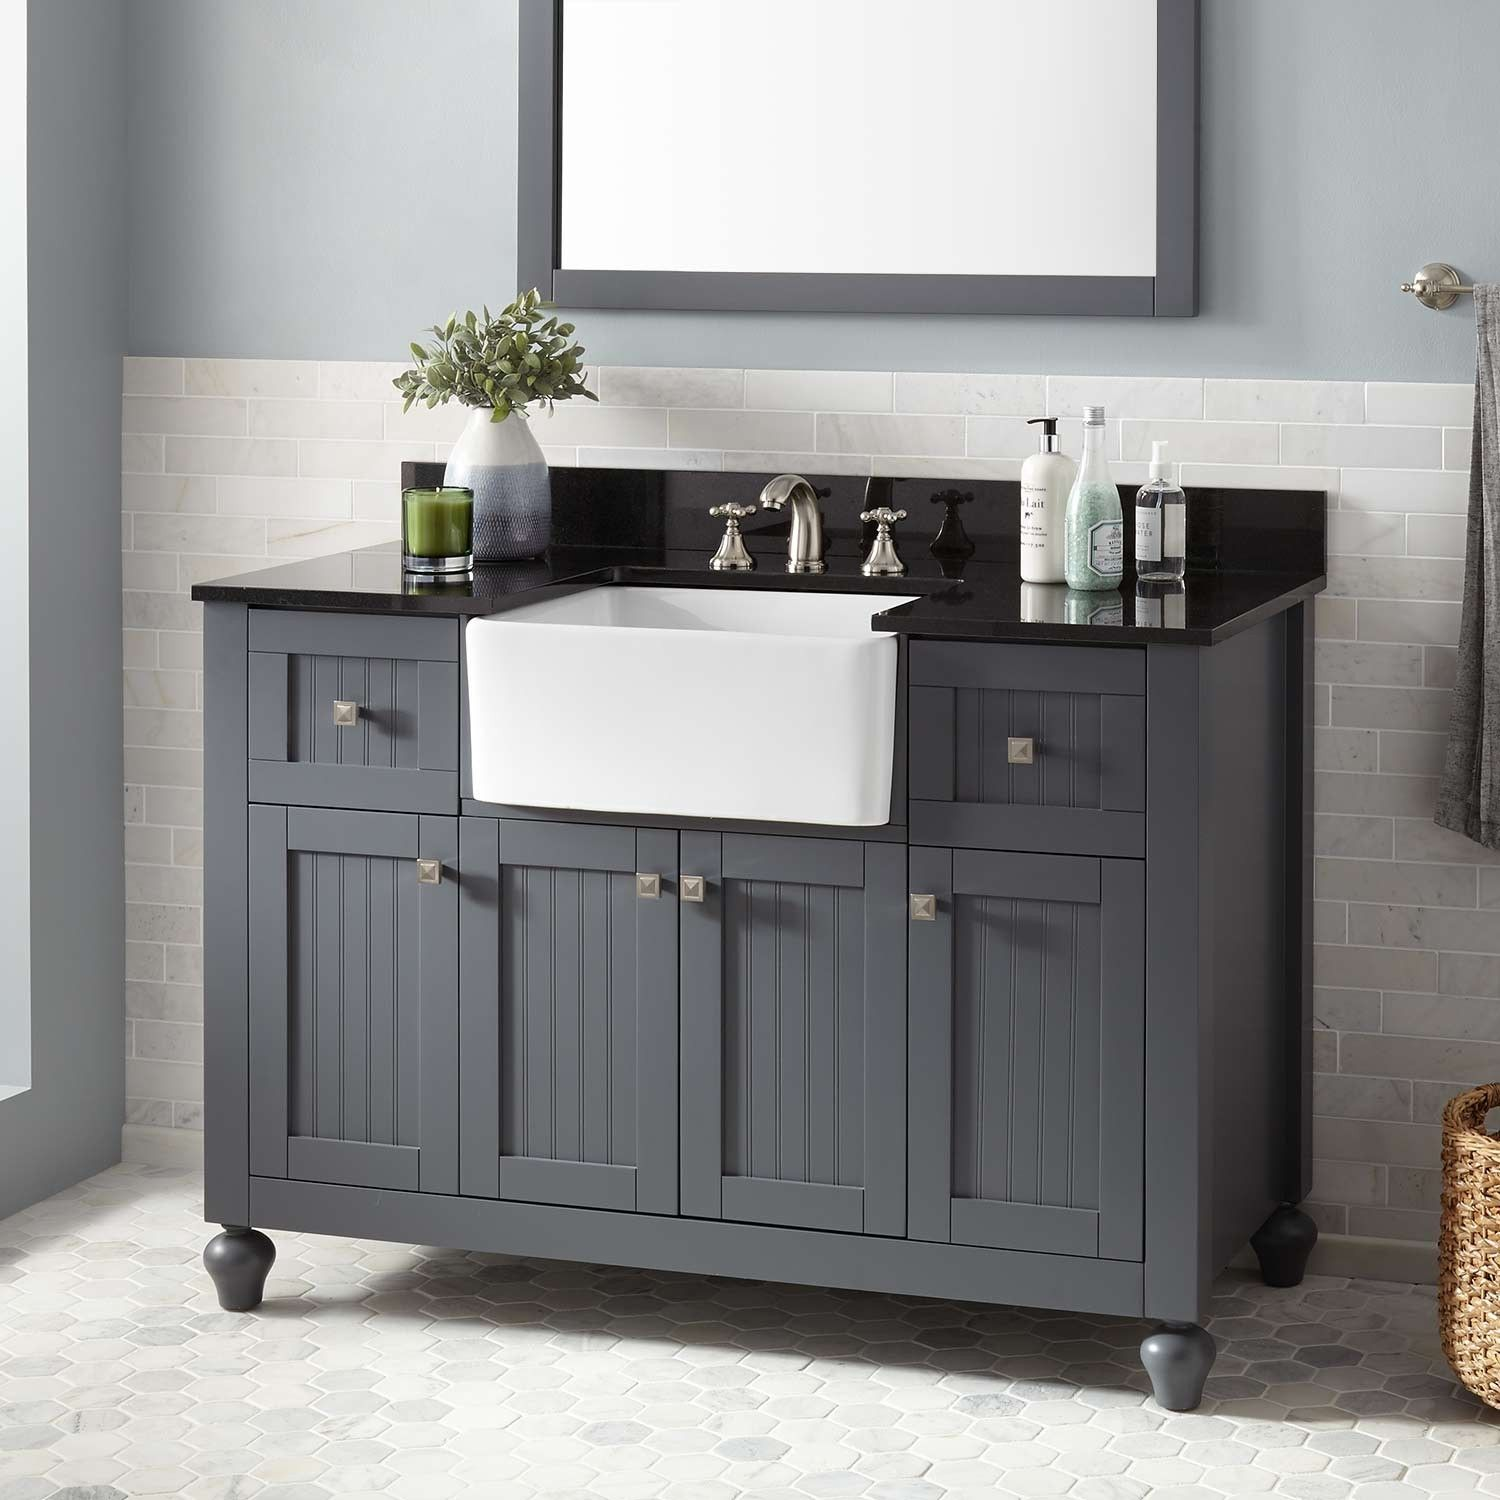 48 Nellie Farmhouse Sink Vanity Dark Gray Farmhouse Sink